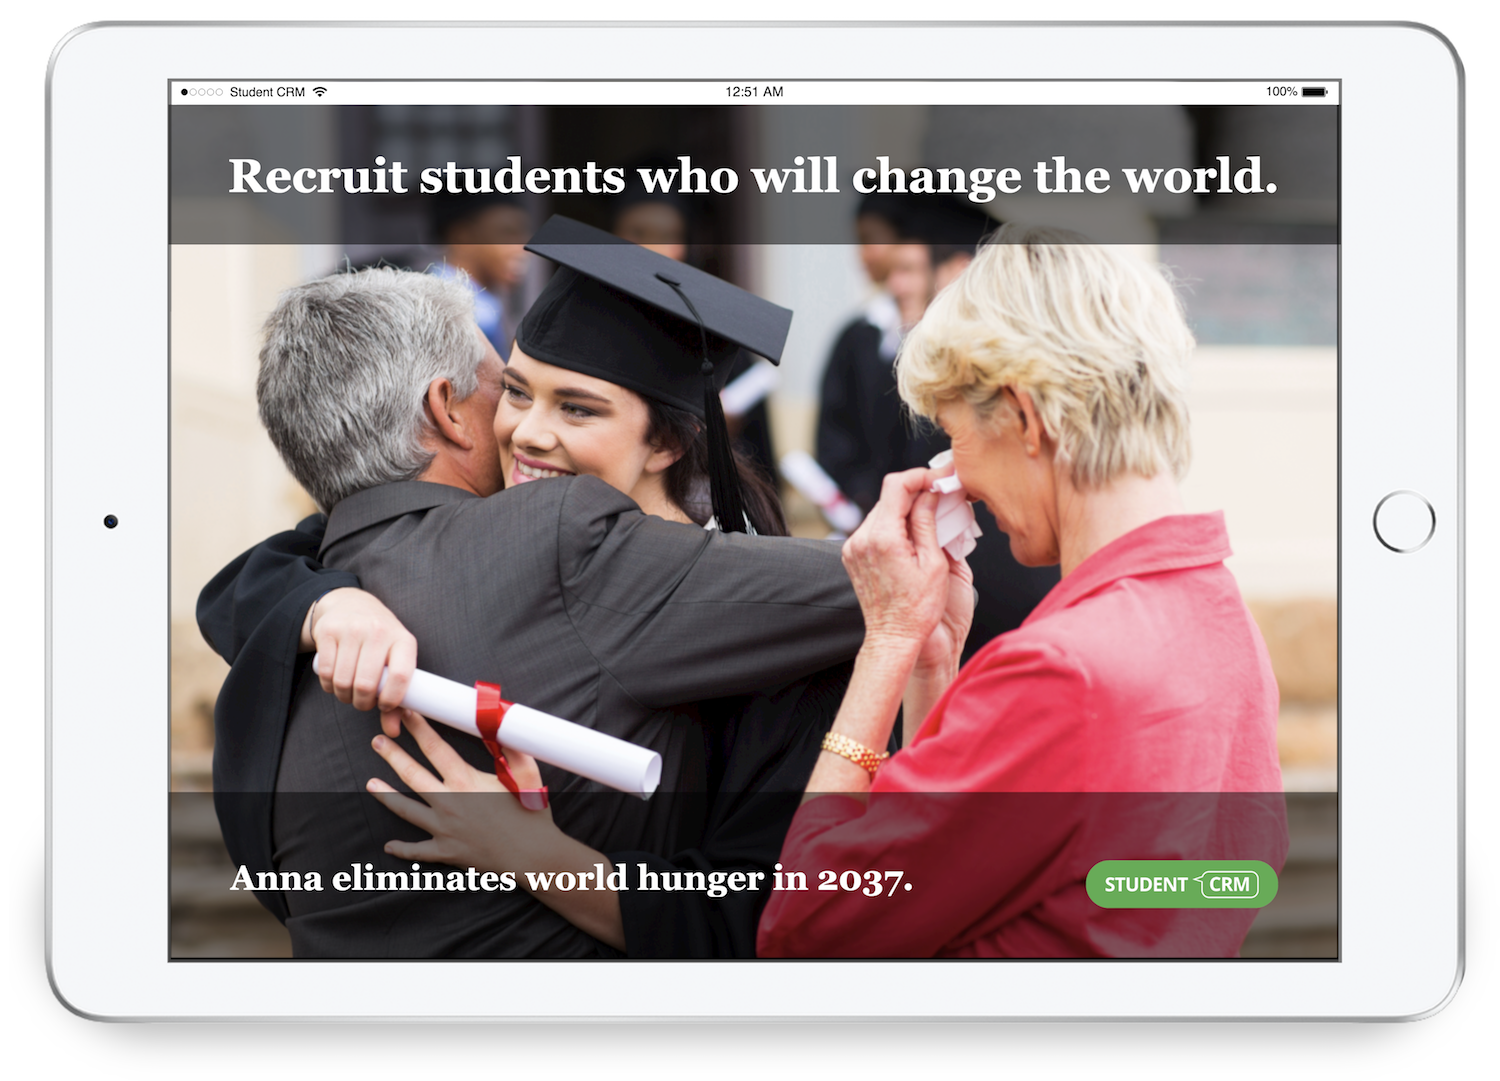 We help universities to recruit students who will change the world. - Your purpose is our purpose. Attract, engage and recruit the students who will achieve extraordinary success.